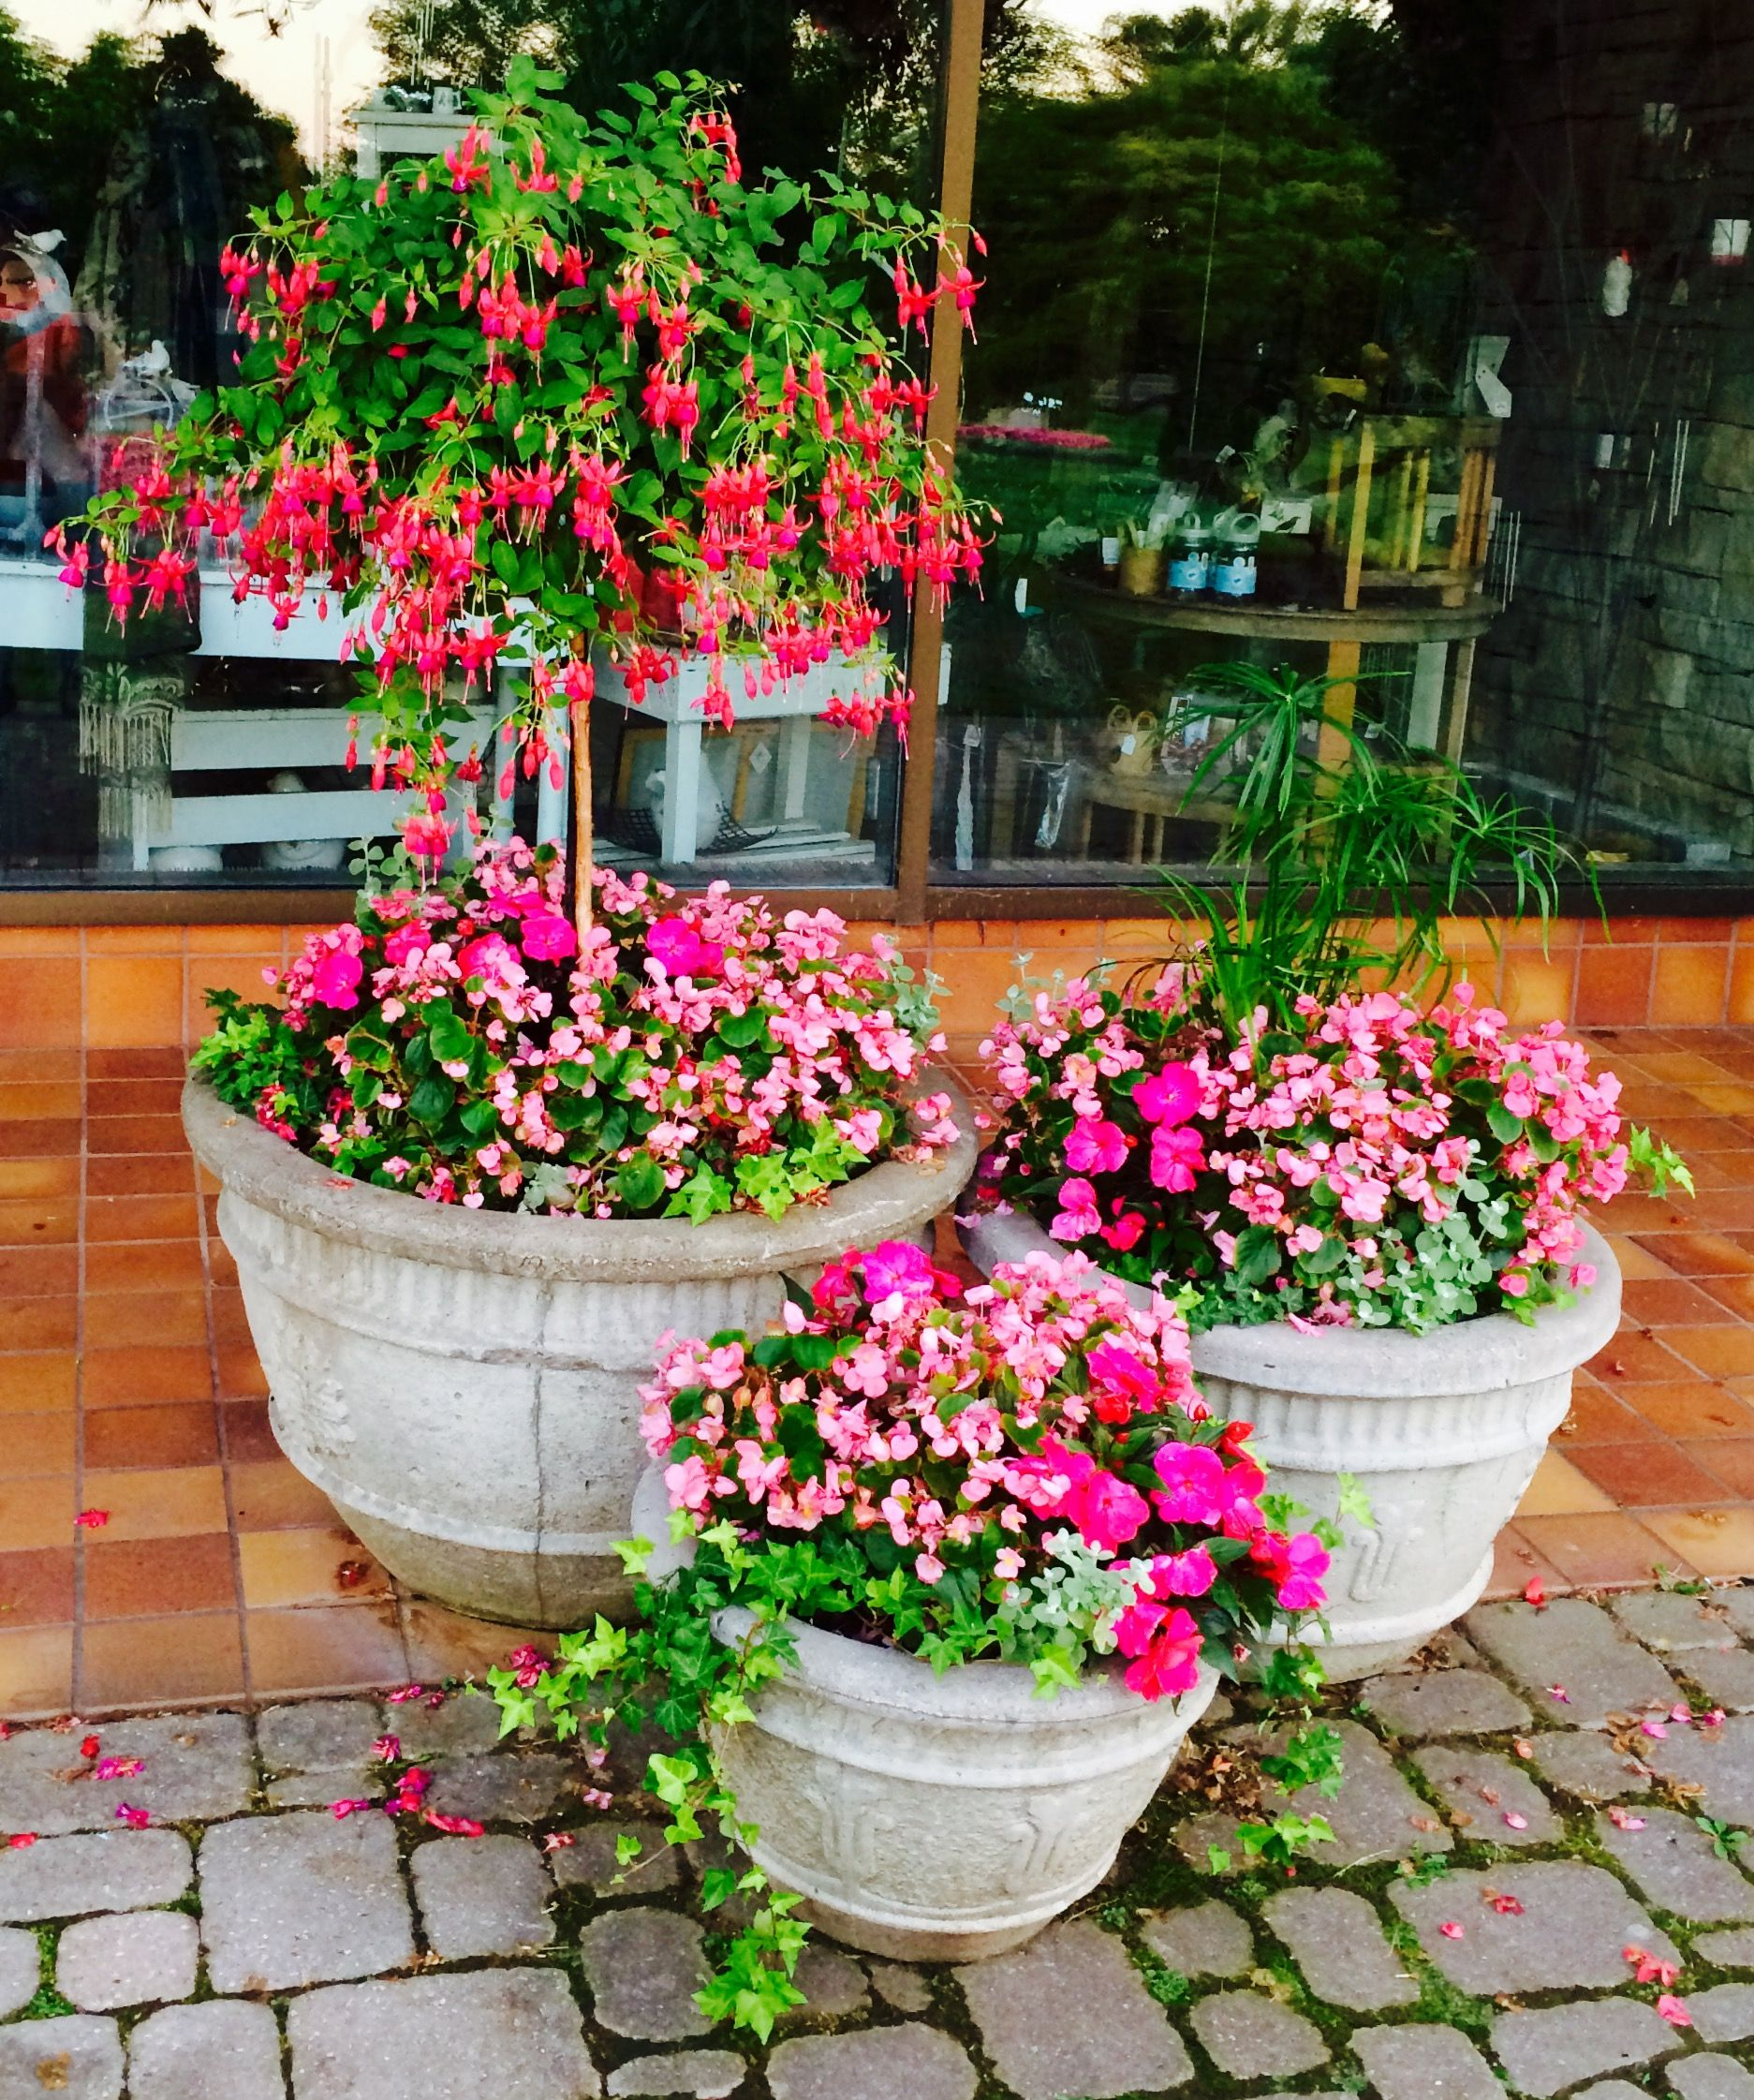 Fuchsia Hanging Basket With Pots Of New Guinea Impatiens(Painted Paradise